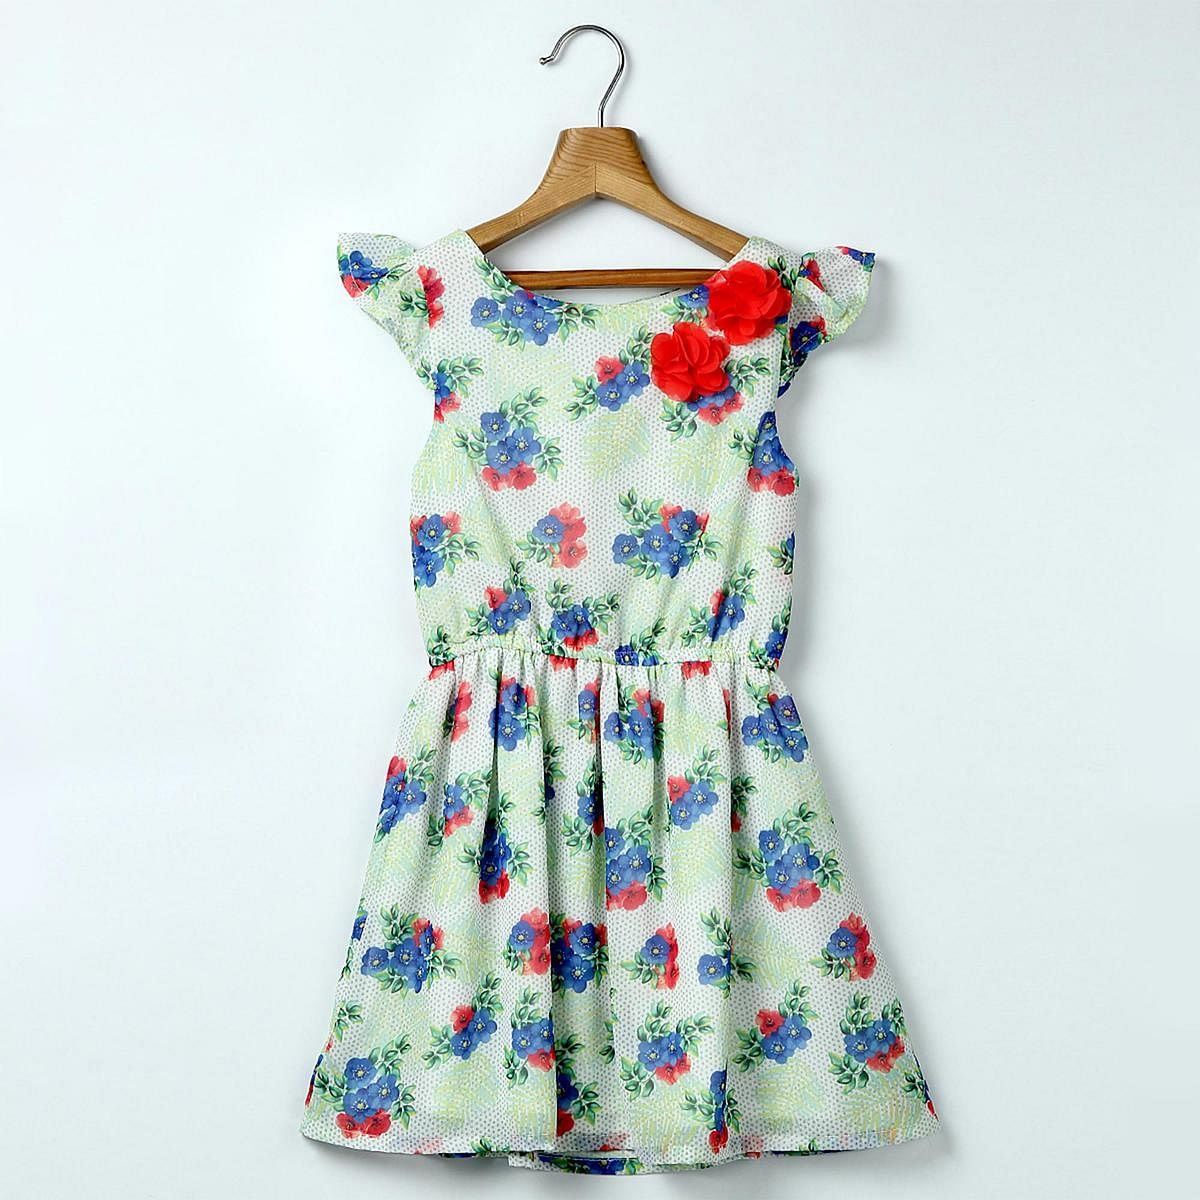 Beebay Tropical Floral Print Dress For Kids